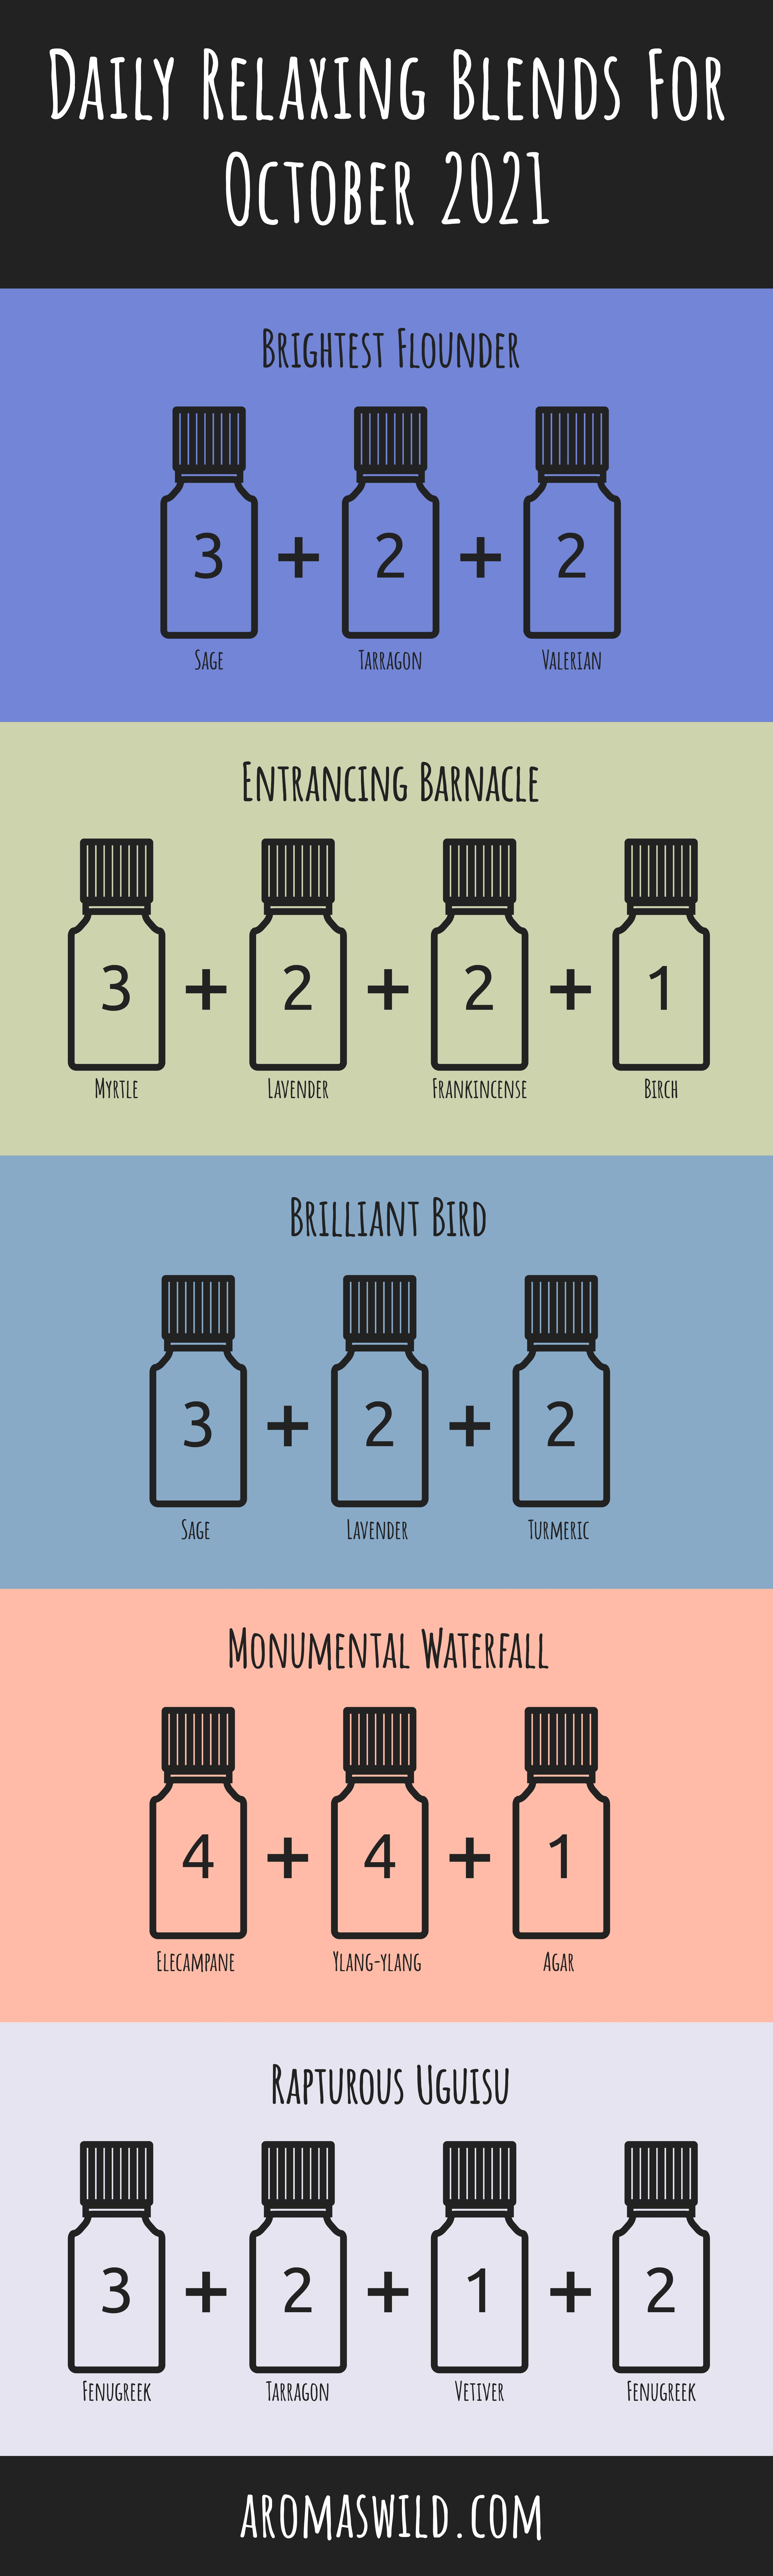 best essential oils for sleep and relaxation – Daily Relaxing Blends For 15 October 2021